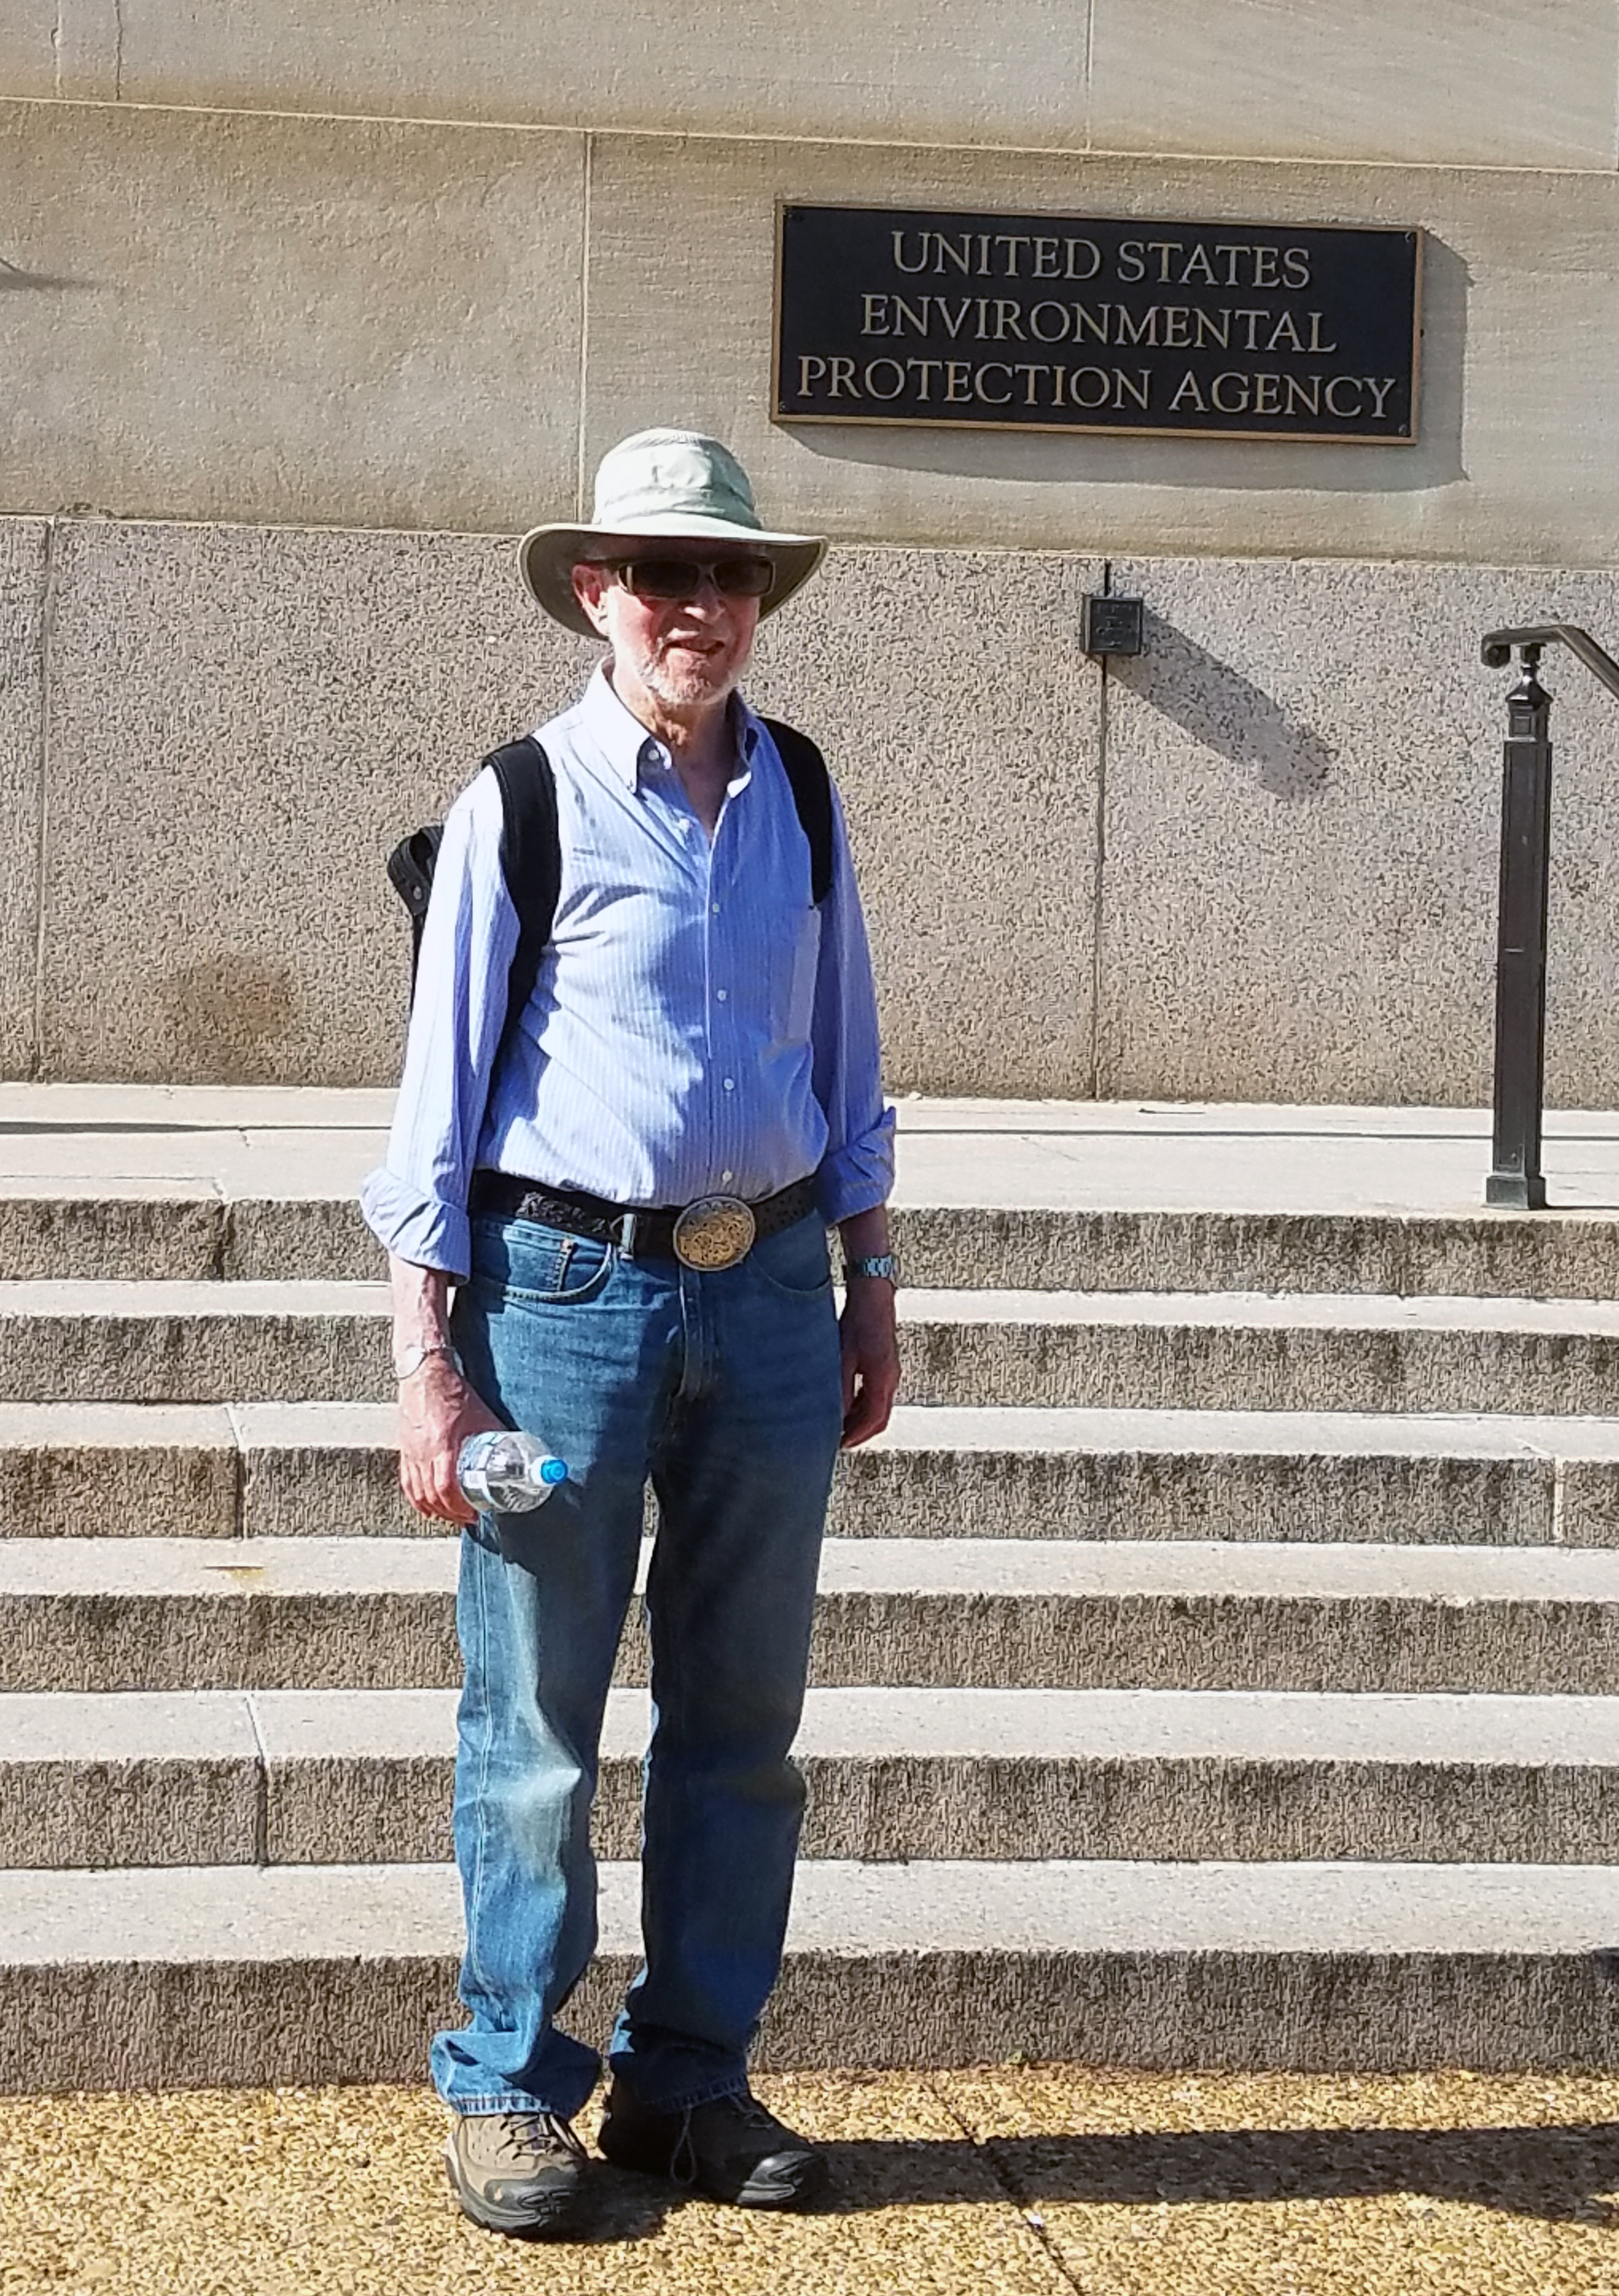 Stephen A. Jurovics stopped outside the Environmental Protection Agency offices while in Washington in April to participate in the Peoples Climate March. He is advocating for a faith-based environmental rights movement similar to the civil rights movement. Photo courtesy of Stephen Jurovics.